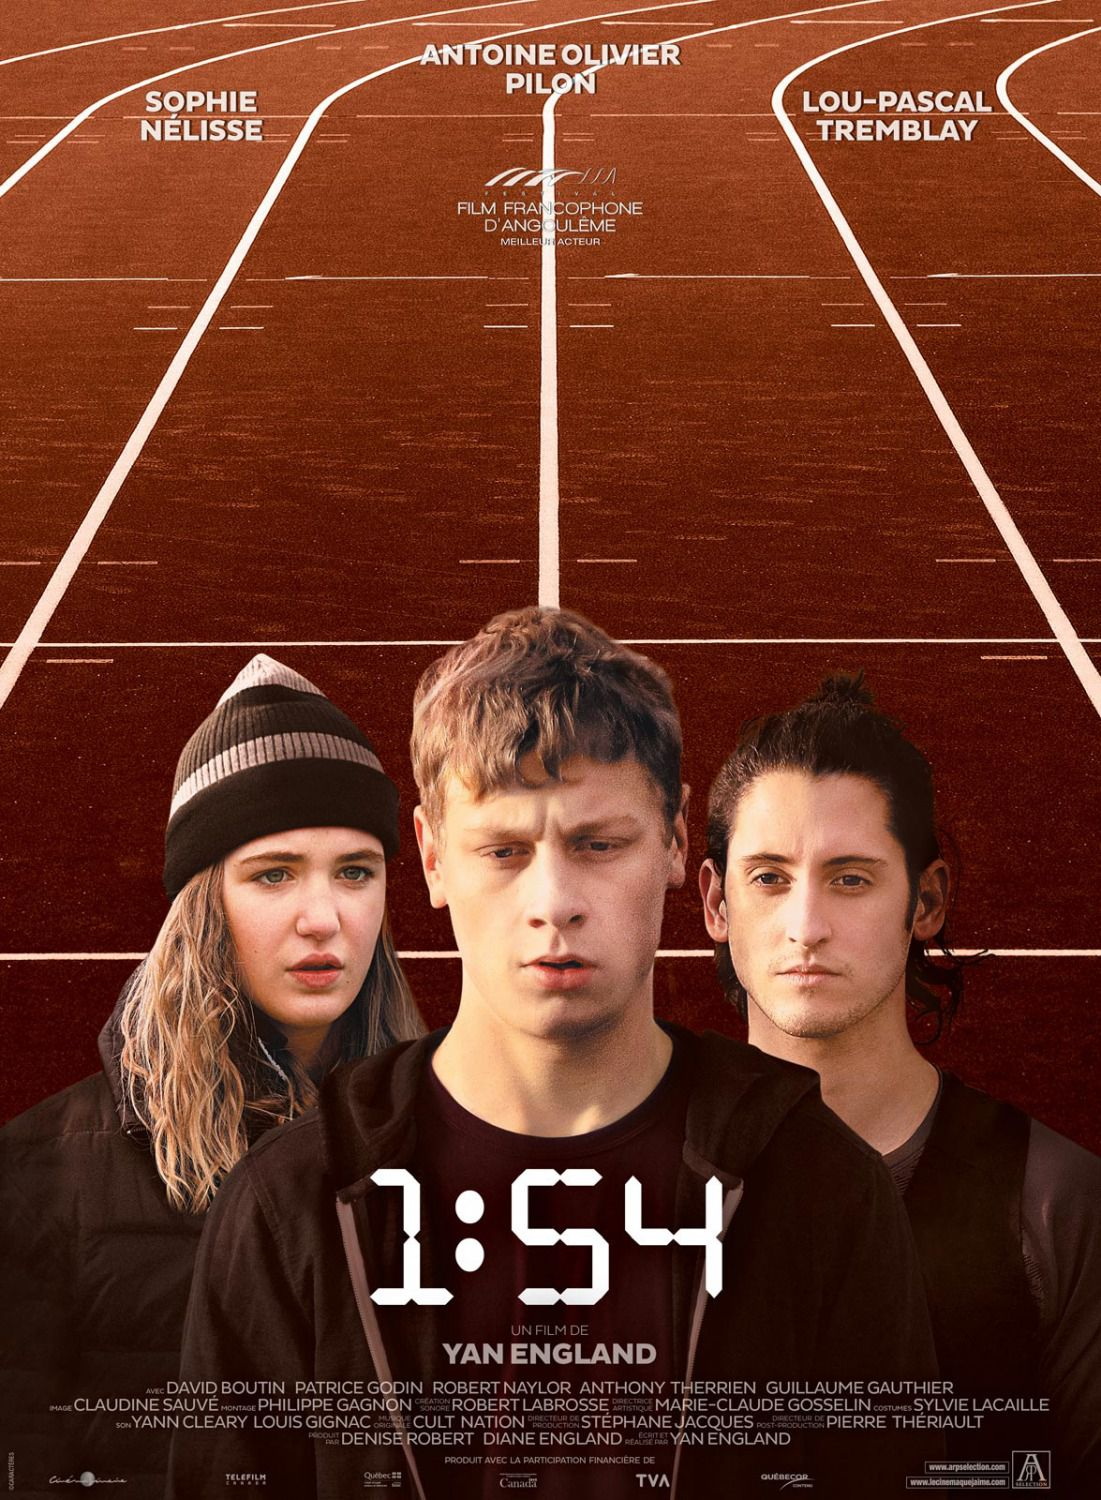 1:54 - Record Run Race - film poster